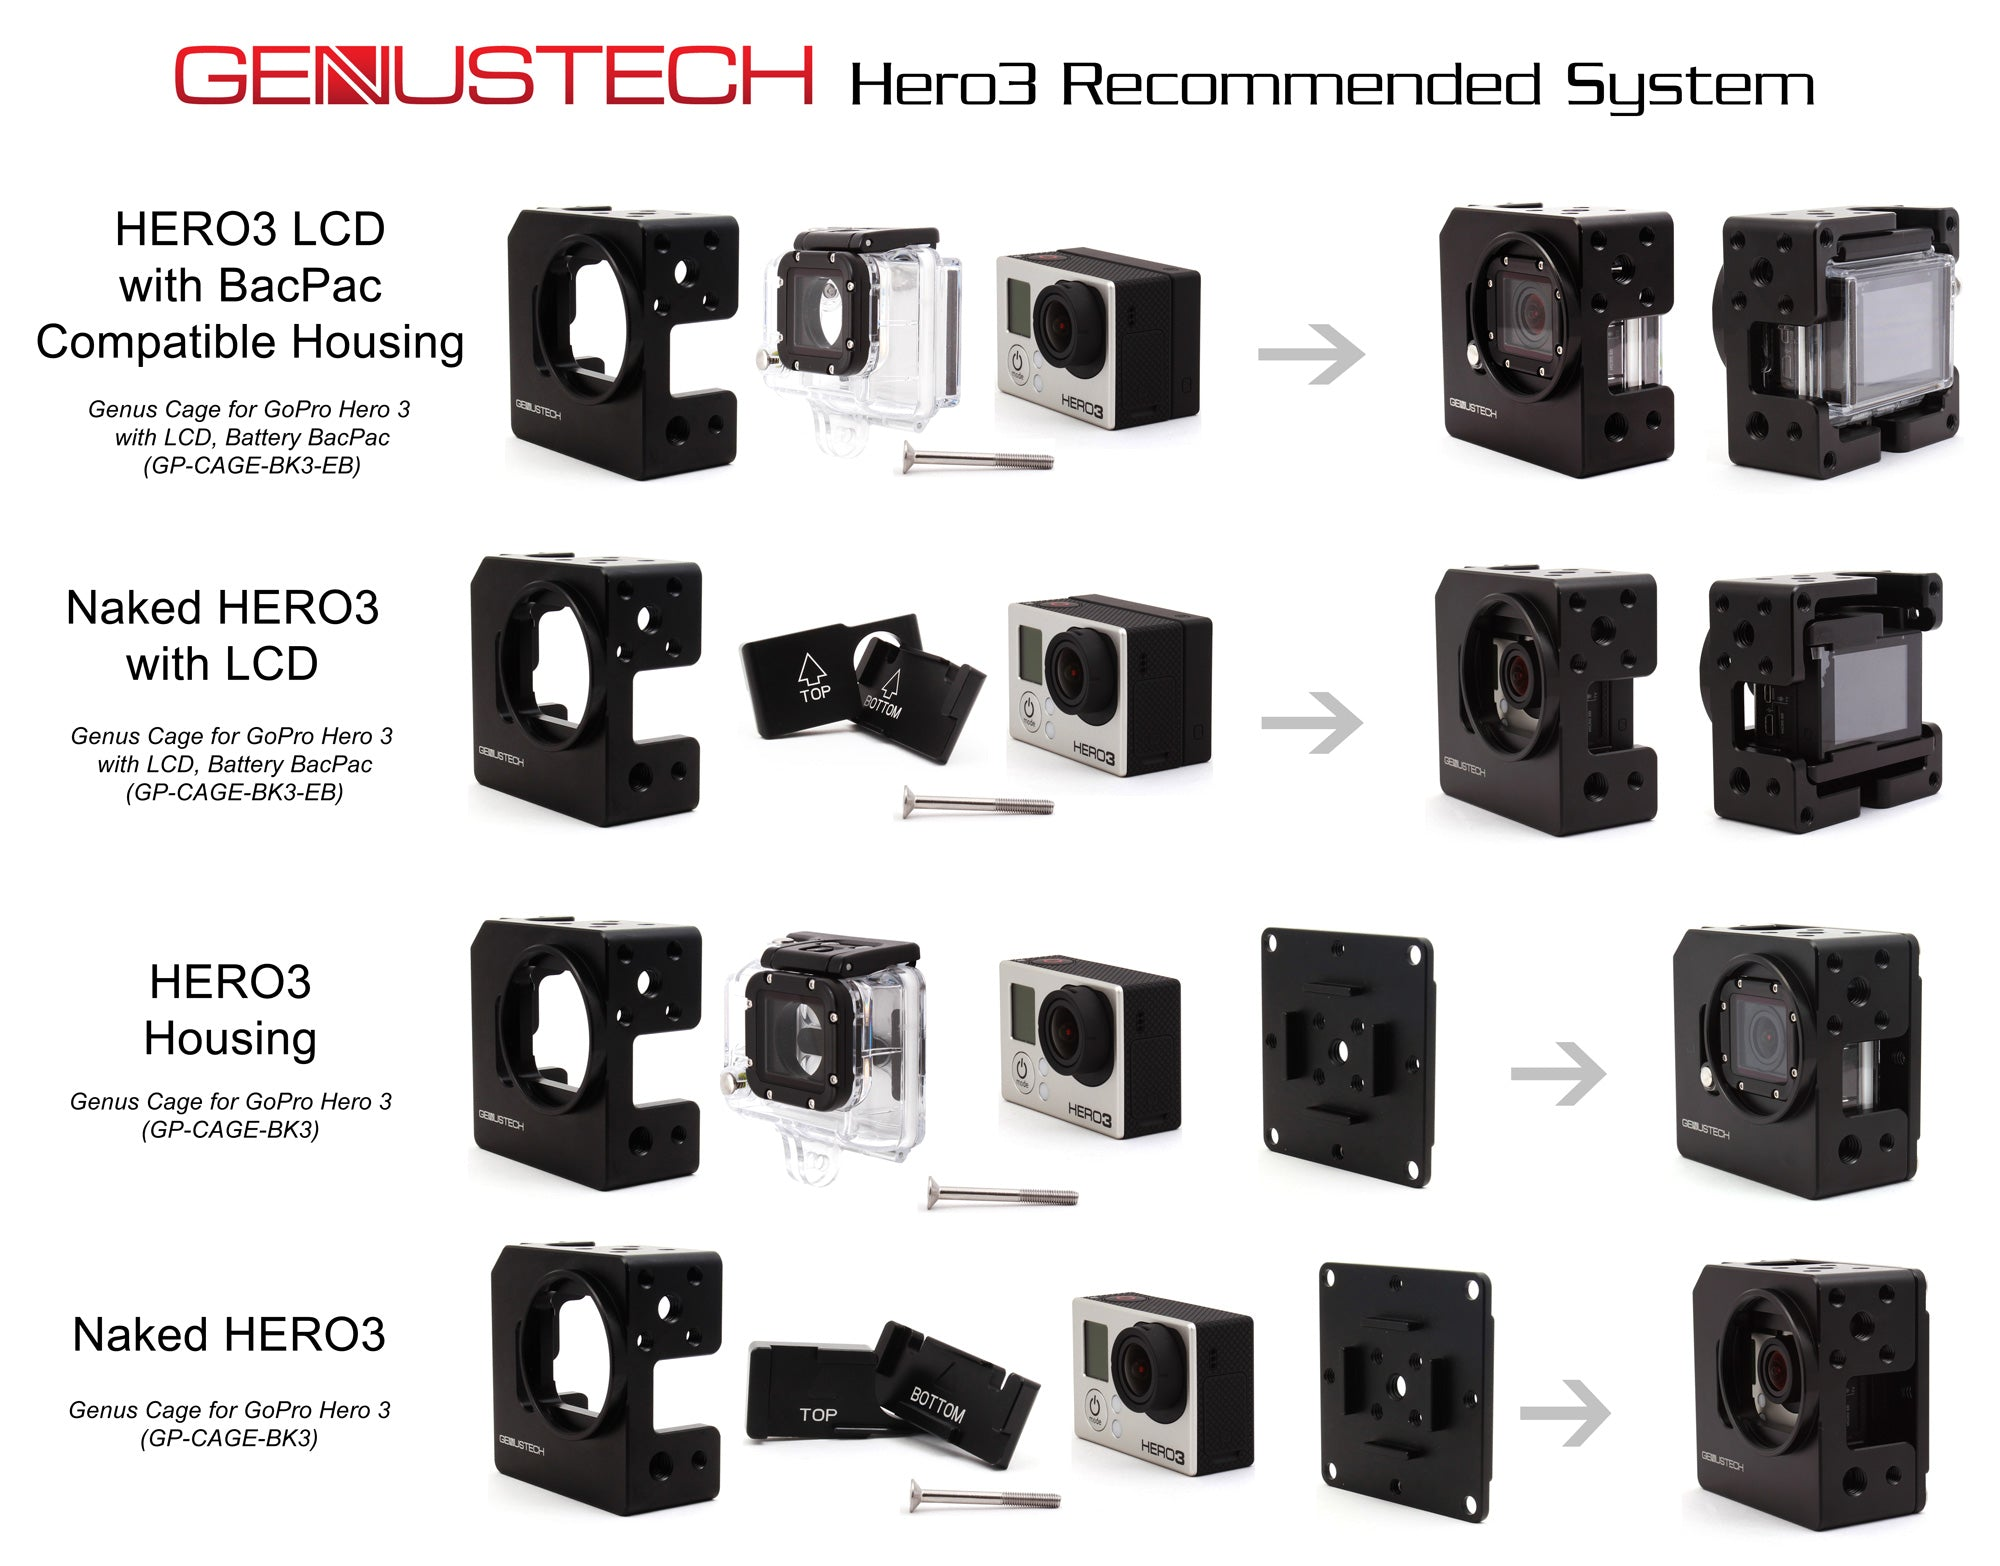 gopro camera accessories and mounts genustech. Black Bedroom Furniture Sets. Home Design Ideas